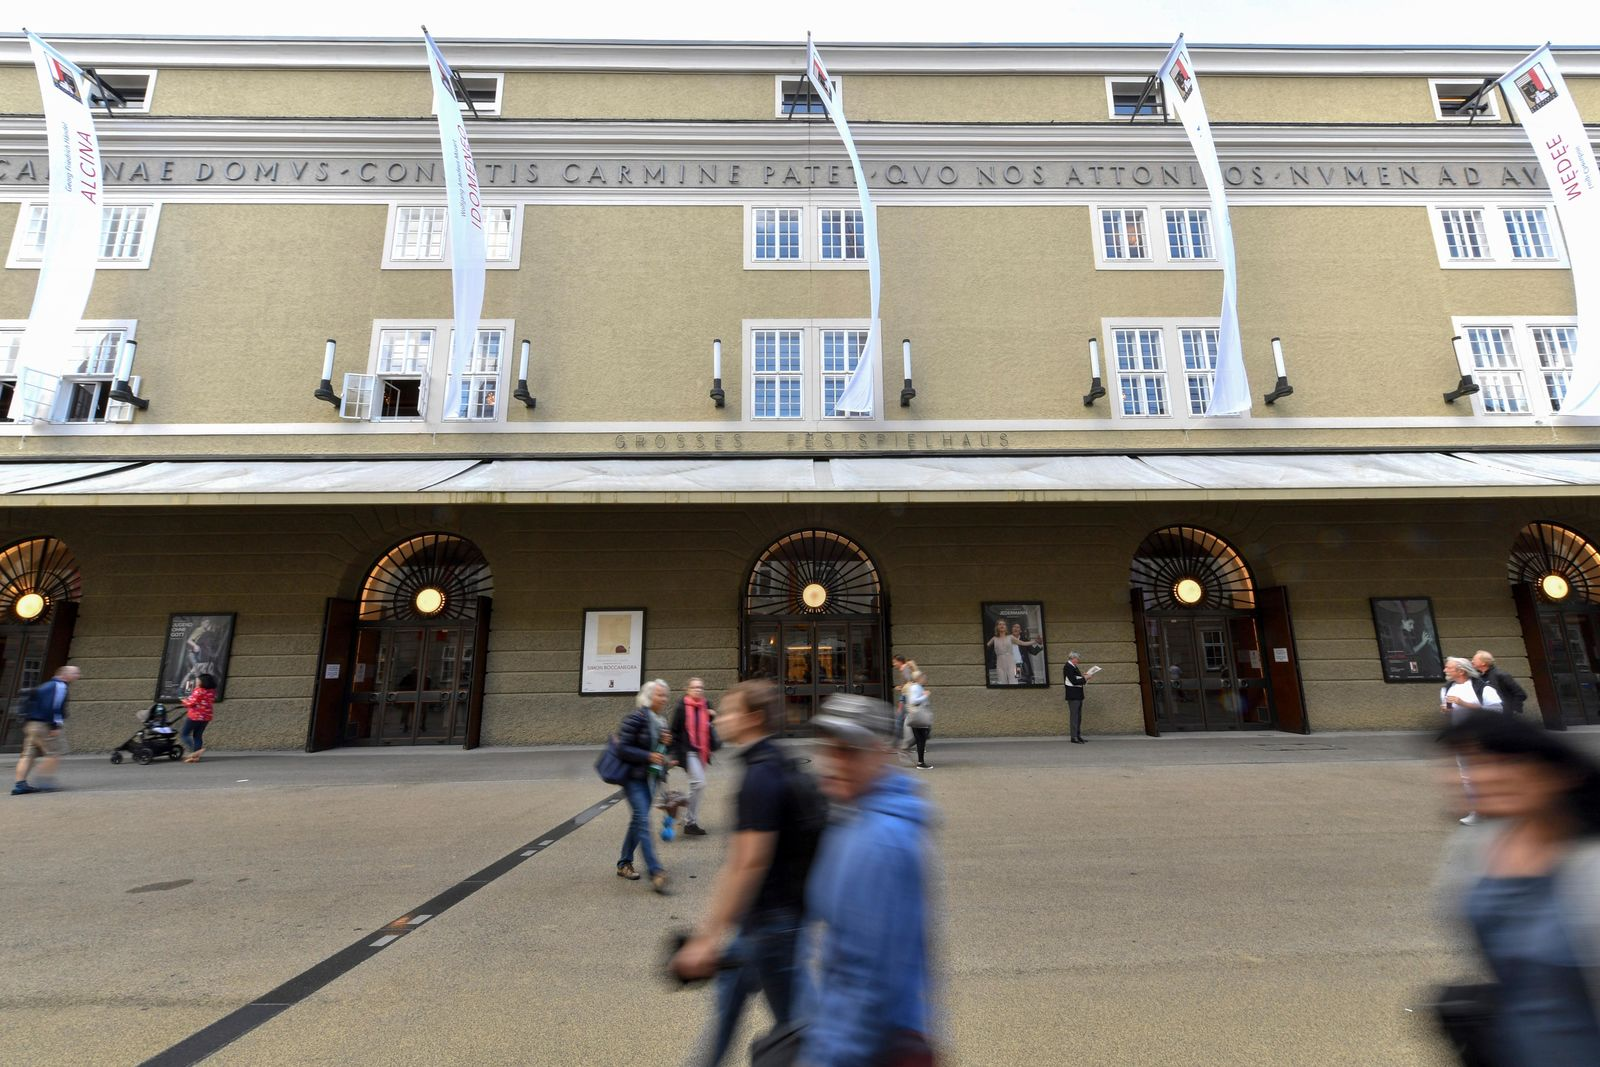 FILE - In this Aug. 14, 2019, file photo, people walk by the opera house in Salzburg, Austria, where singer Placido Domingo is scheduled to perform 'Luisa Miller' by Giuseppe Verdi. Domingo is scheduled to appear onstage at the Salzburg Festival Aug. 25, 2019, to perform for the first time since multiple women have accused the opera legend of sexual harassment in allegations brought to light by The Associated Press. (AP Photo/Kerstin Joensson, File)